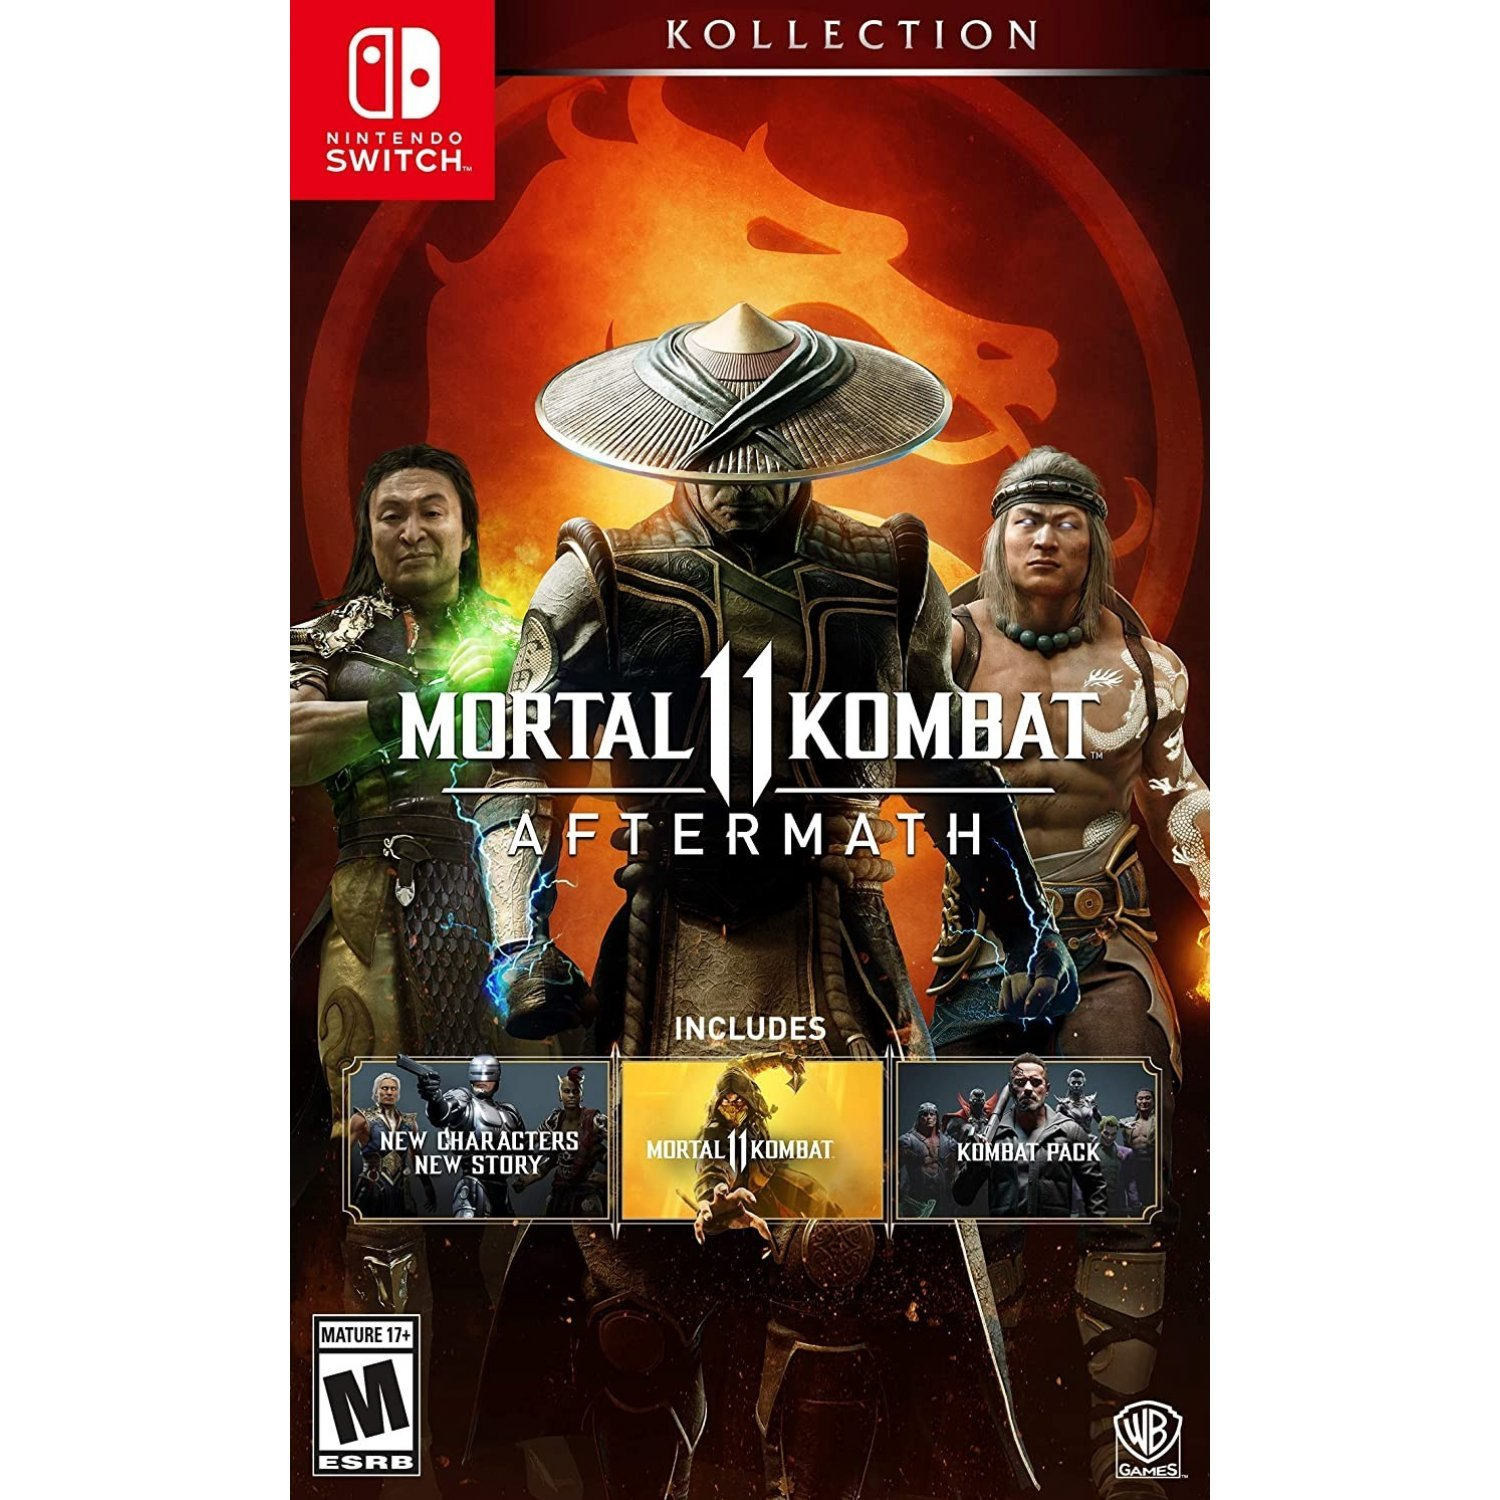 Nintendo Switch - The full set - Page 5 Mortal-kombat-11-aftermath-kollection-629233.14